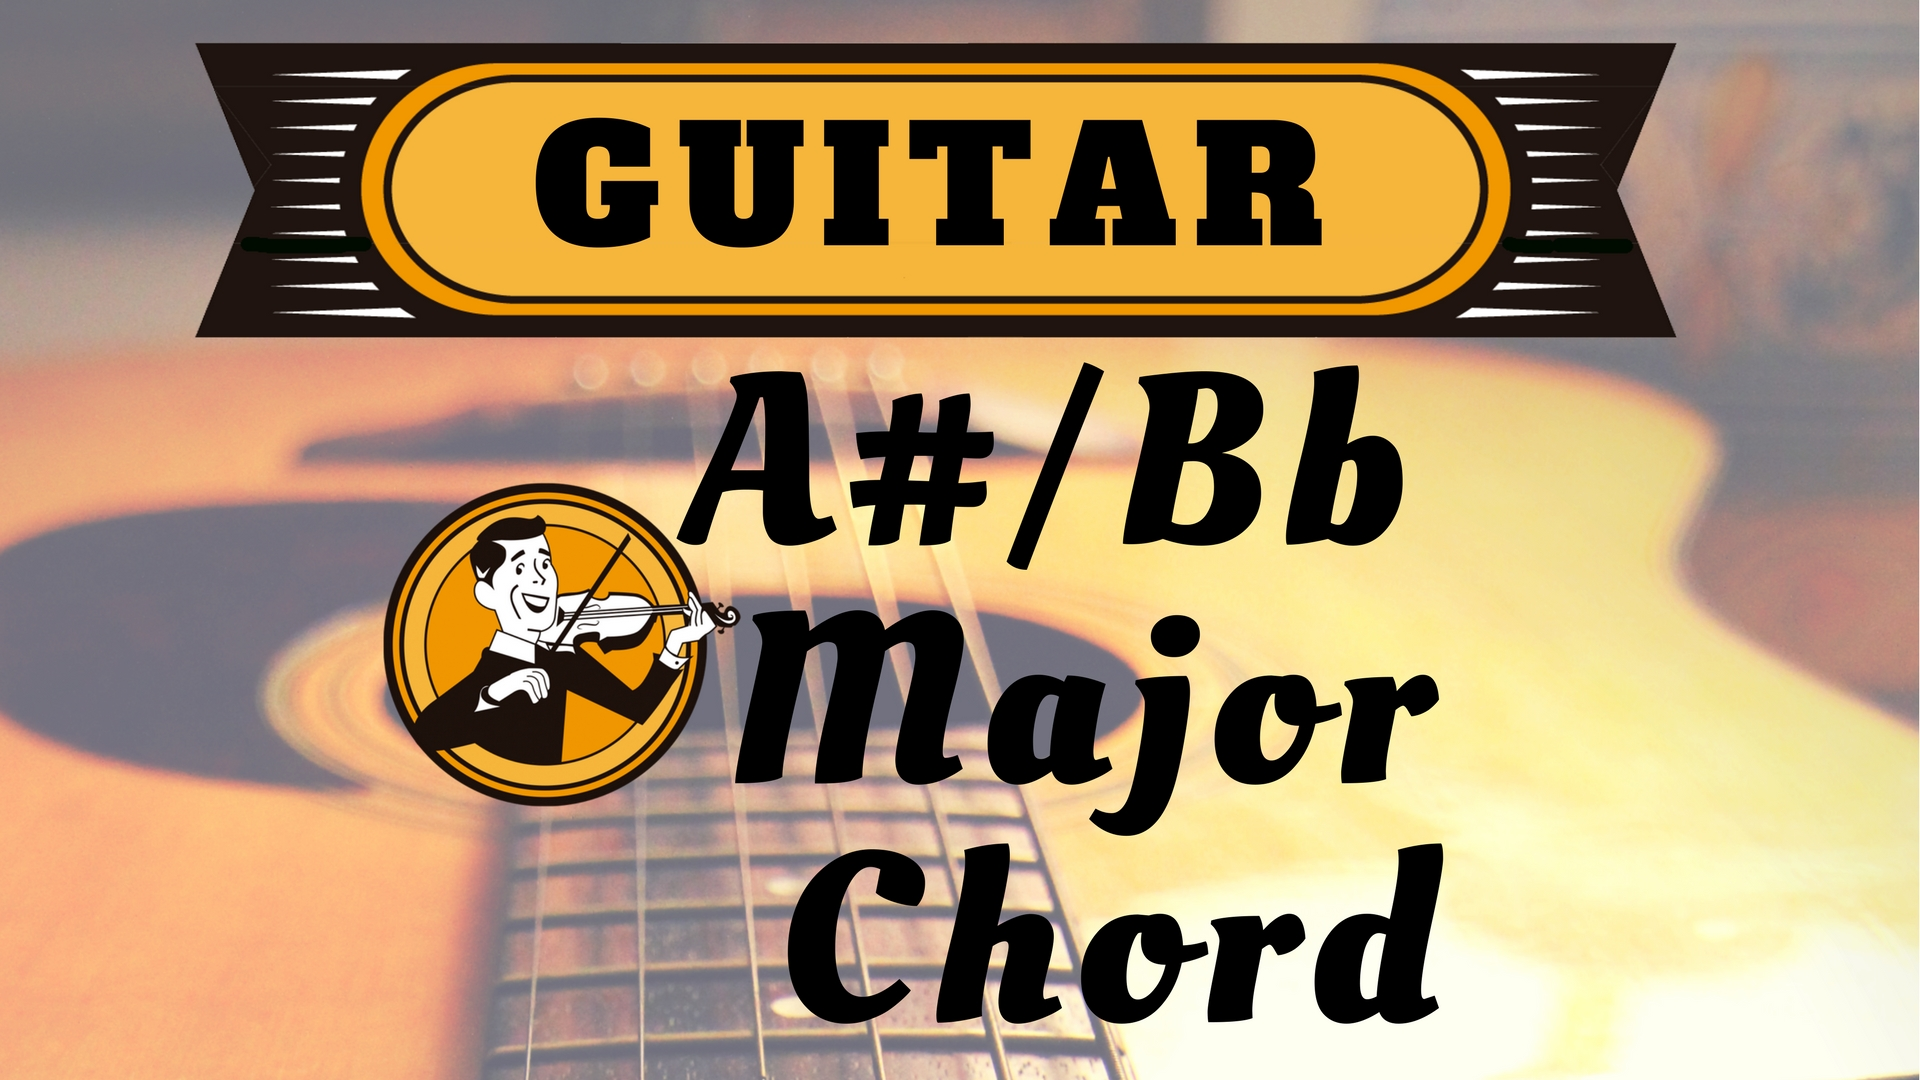 Guitar A sharp Bb Major Chord